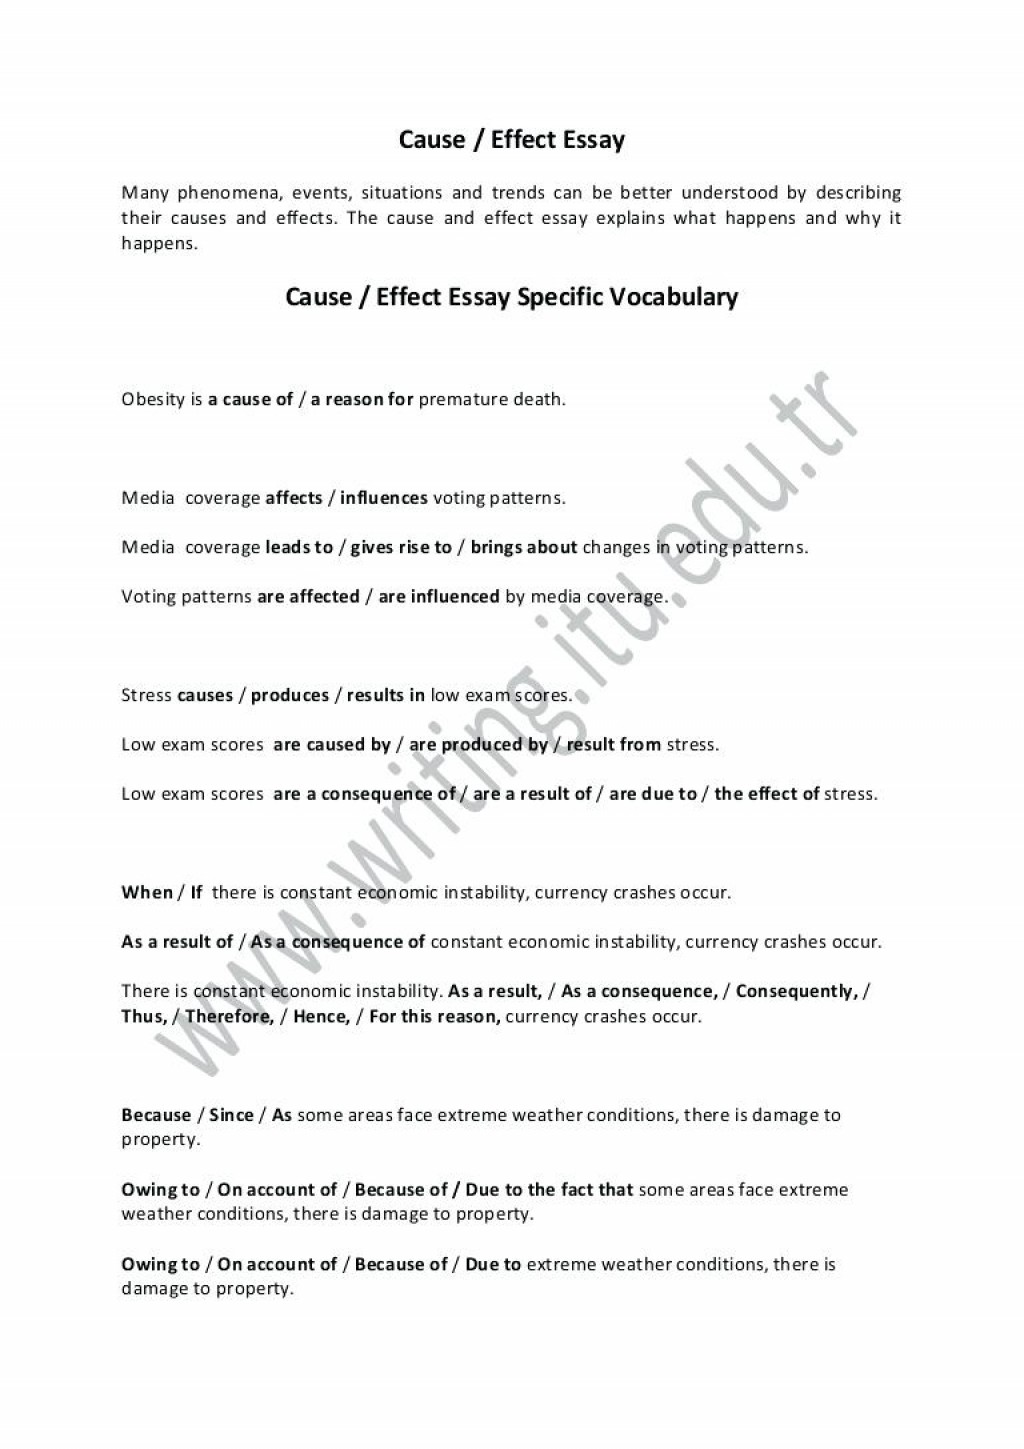 021 Examples Of Cause And Effect Essay Topics Example Outline Resume Thesis Rare Writing Prompts Large